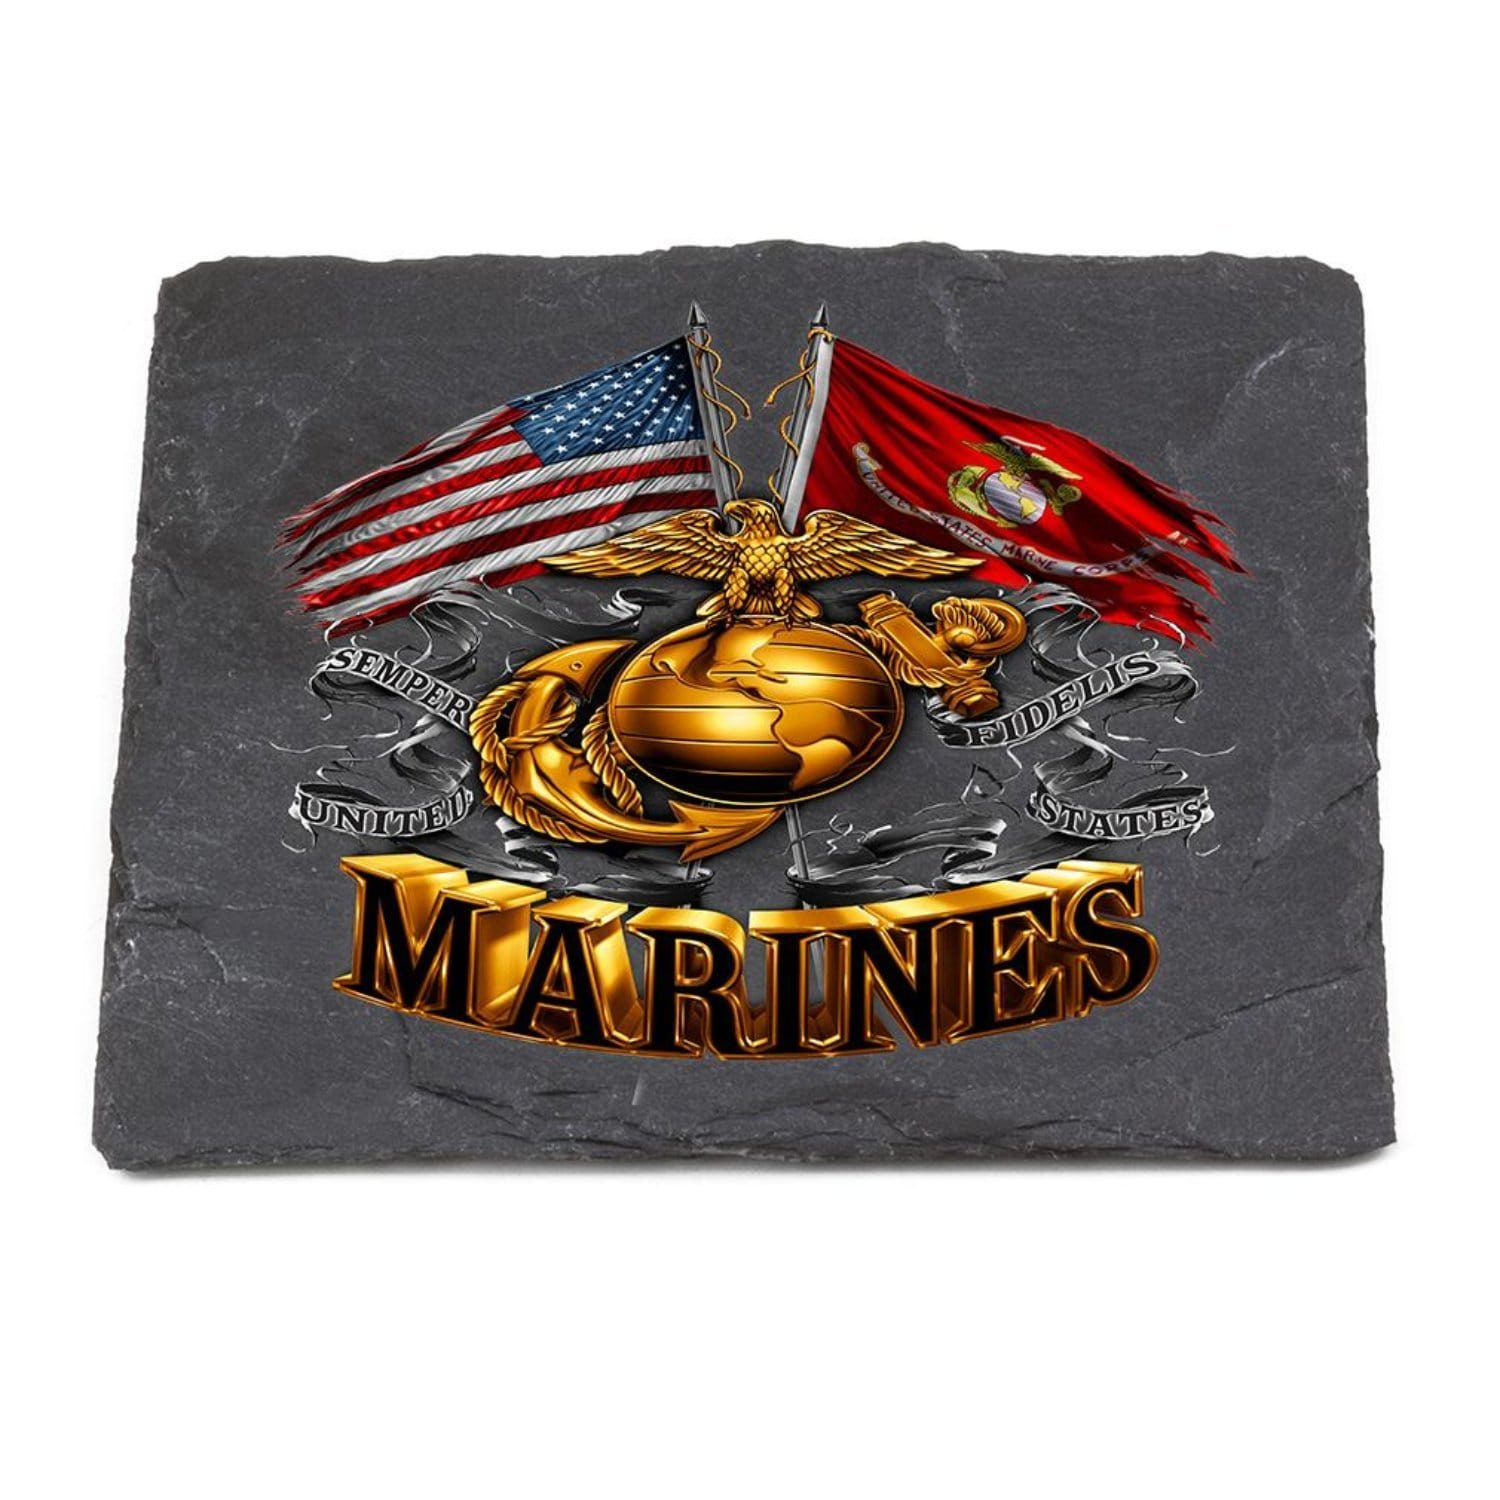 Double Flag Gold Glob Marine Corps Coaster Black